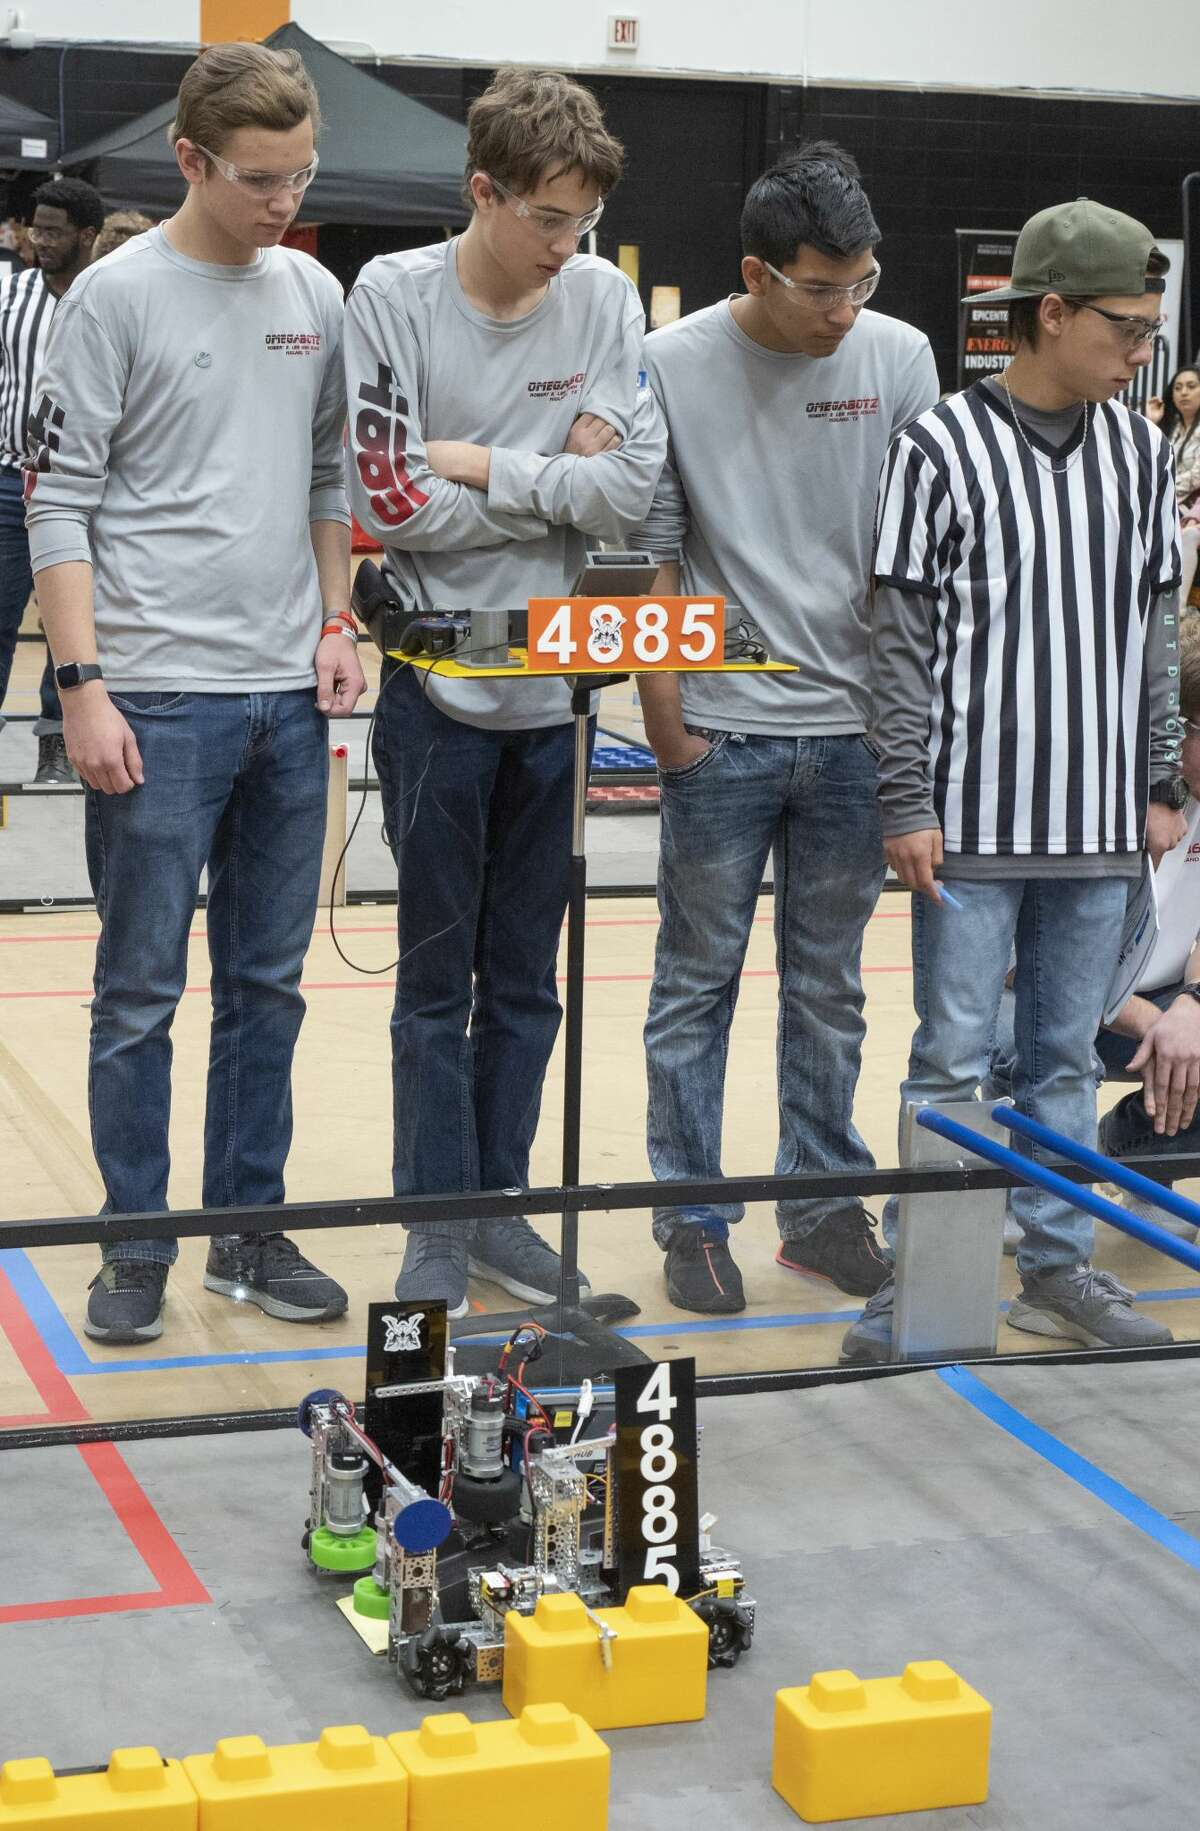 Lee High's Omegabotz, 4885, watch during the automated program competition 02/01/2020 in the FIRST Tech Challenge South League championships at UTPB. Tim Fischer/Reporter-Telegram